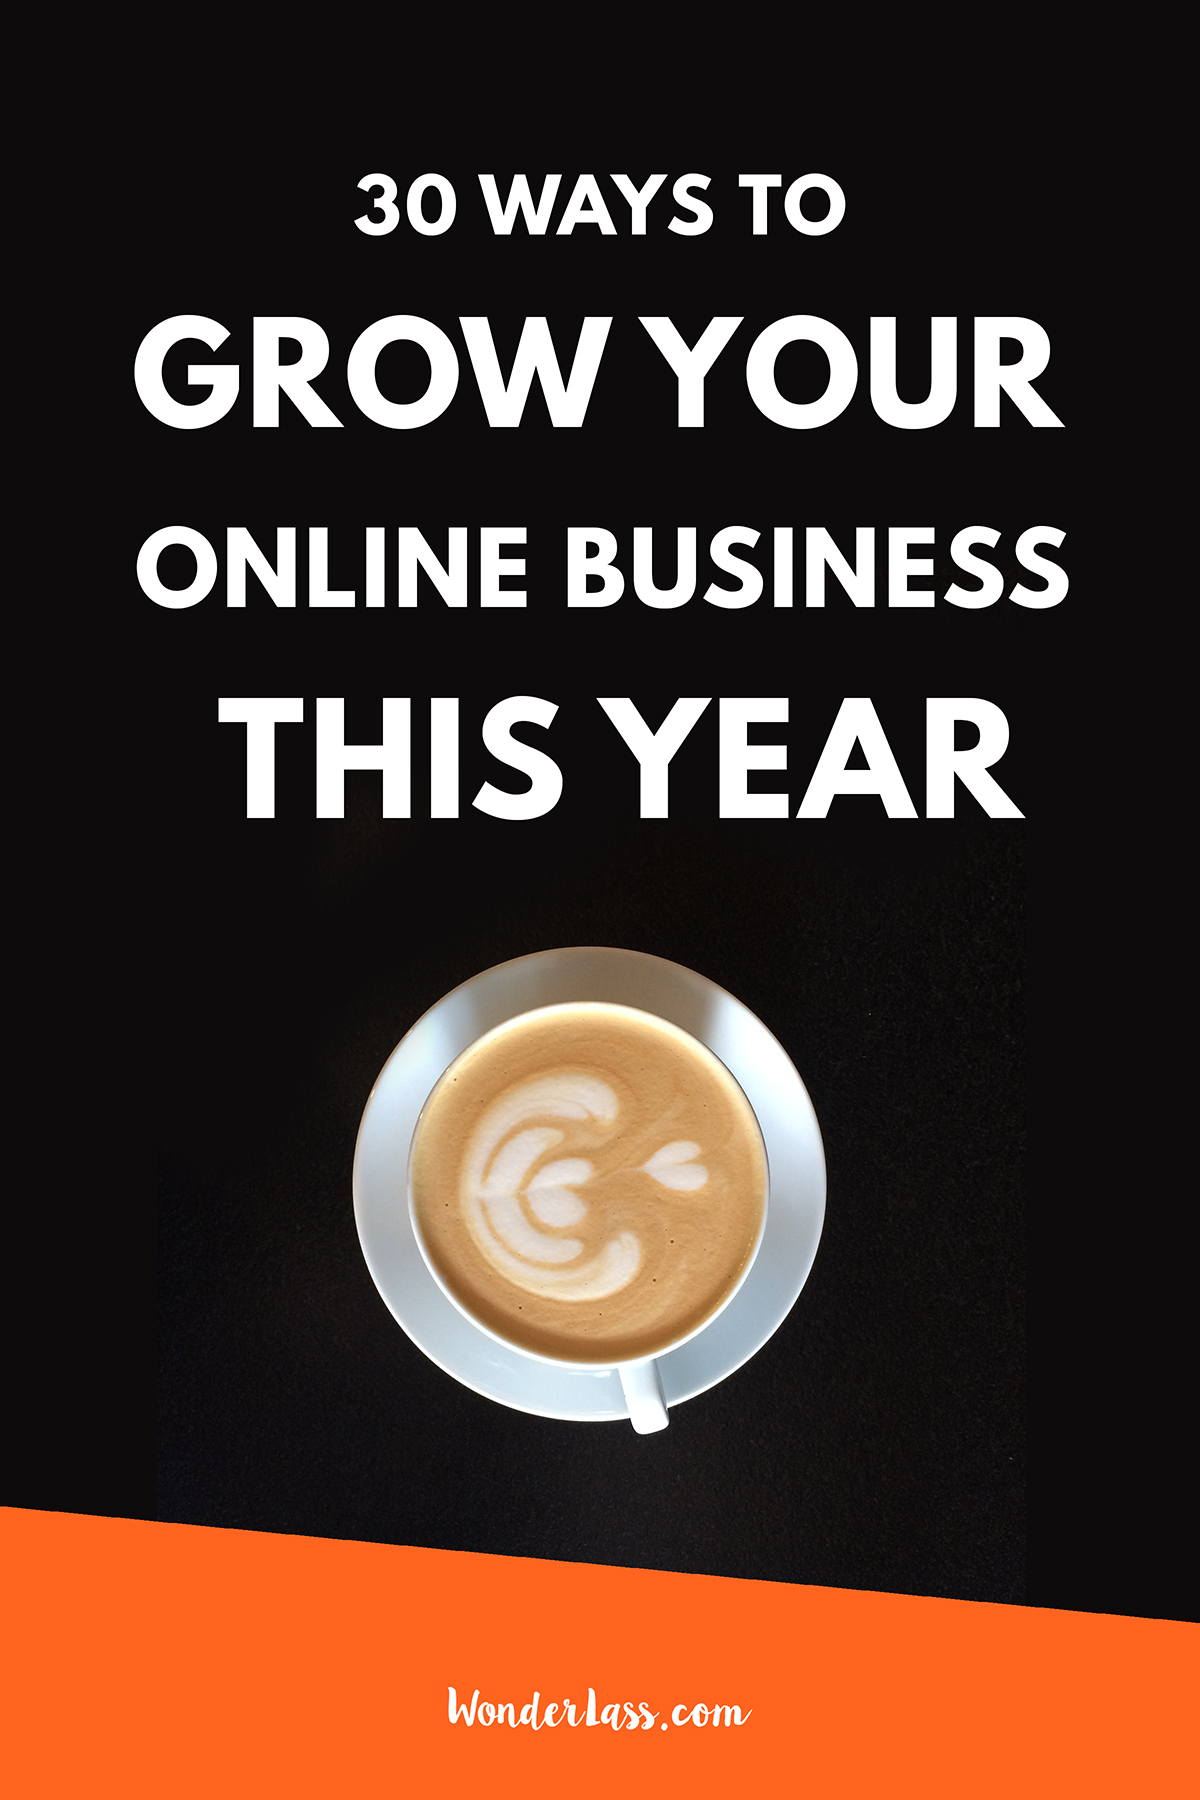 30 ways to grow your online business this year